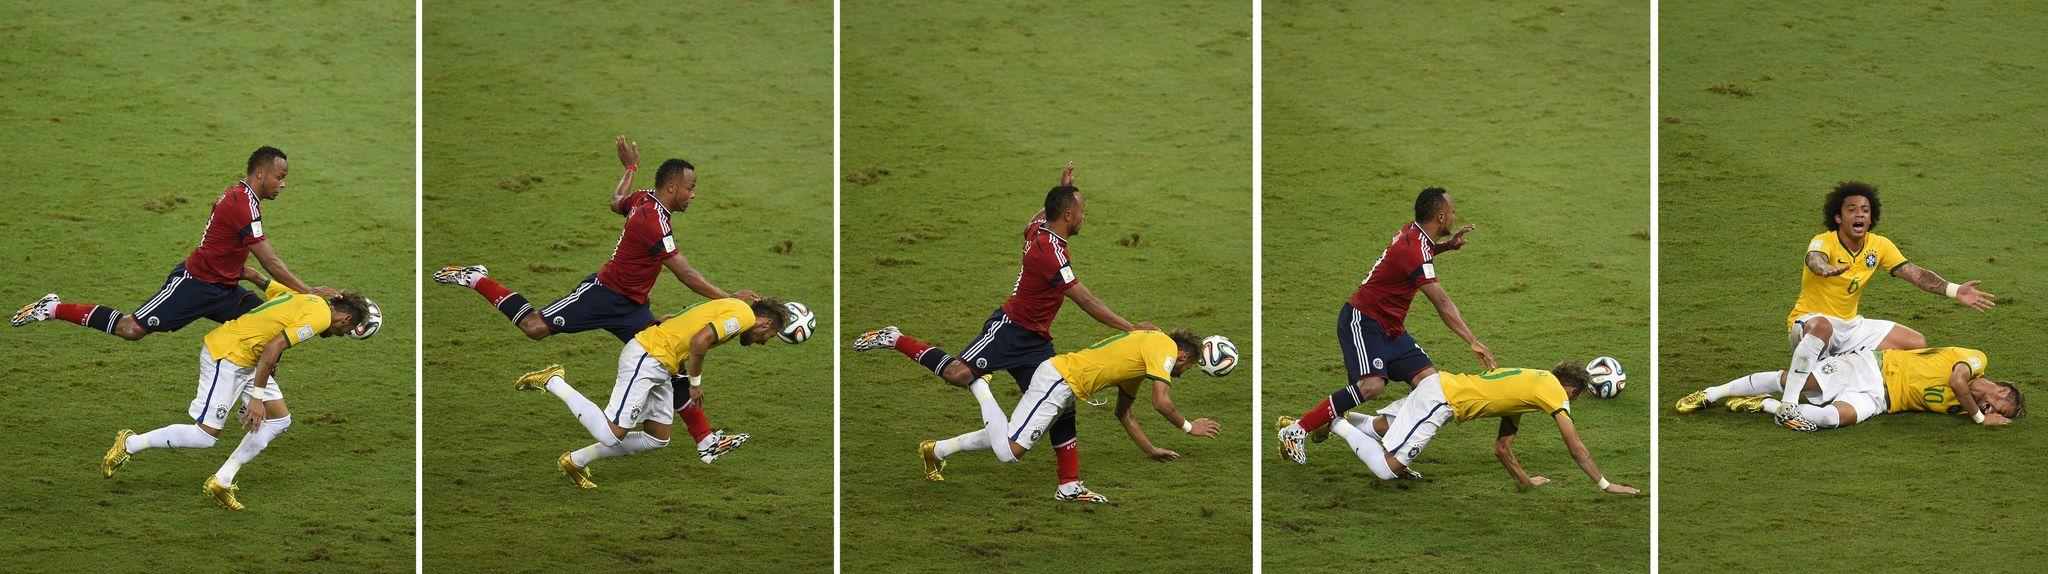 Sequence of pictures showing Colombia's defender Juan Camilo Zuniga challenging Brazil's forward Neymar and Brazilian defender Marcelo shouting for help.